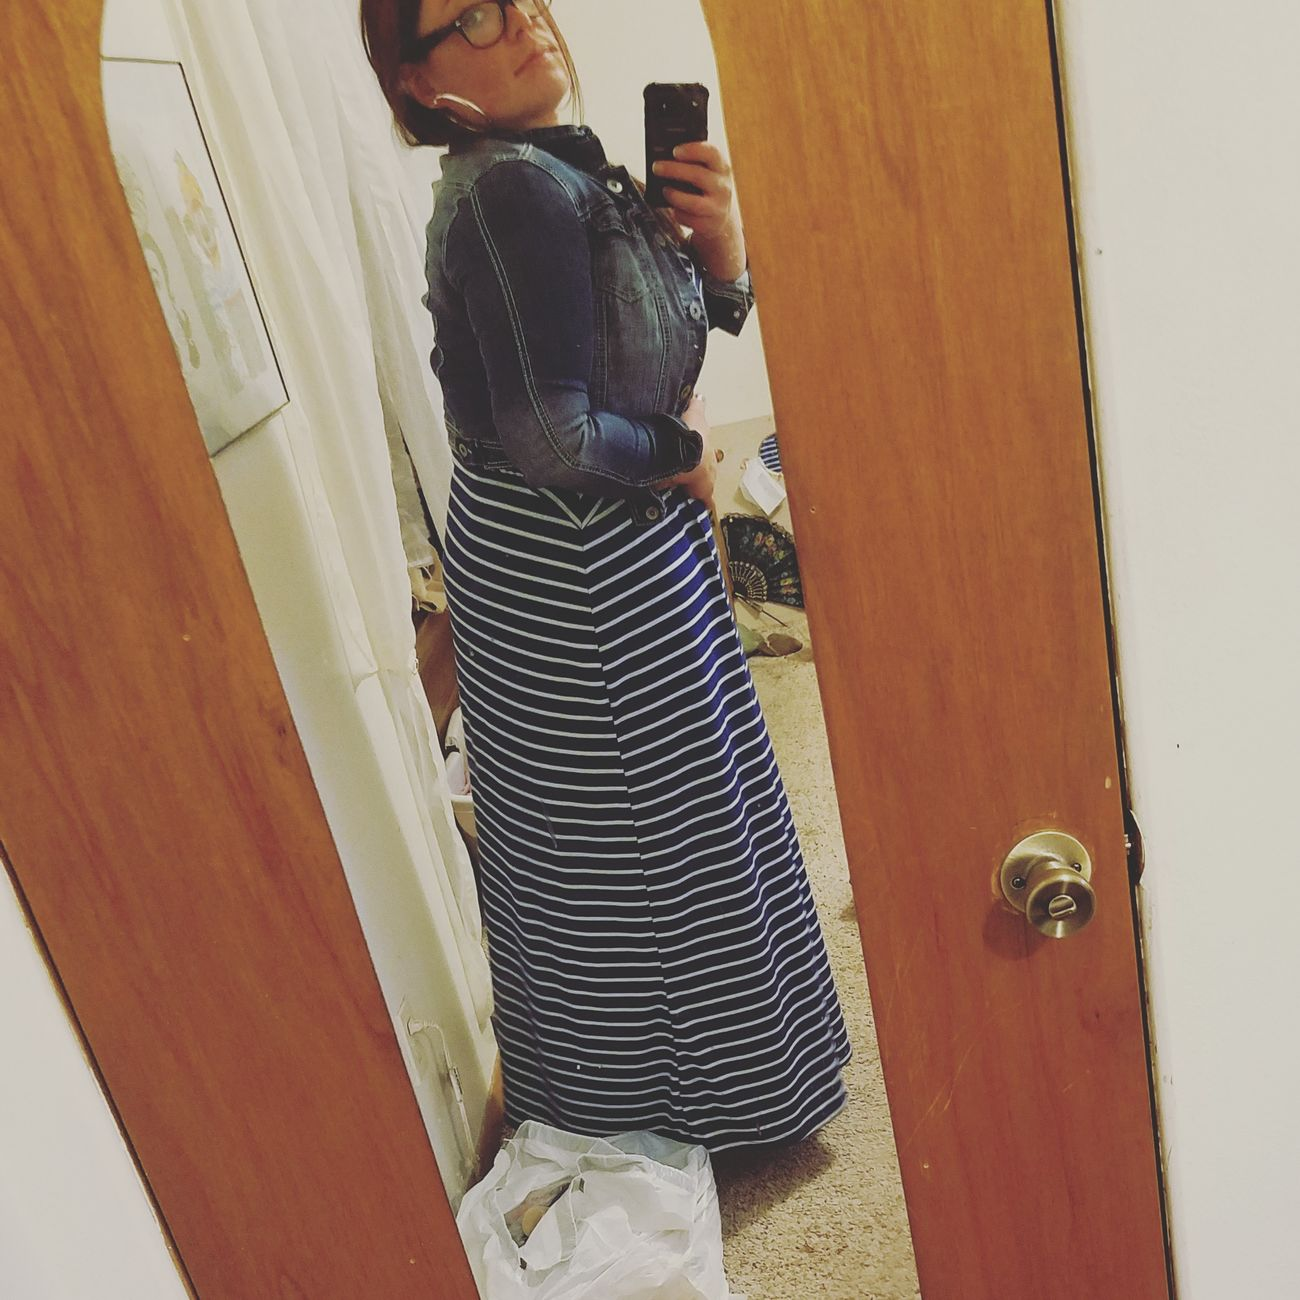 One Person Sexyashell Women Of EyeEm Sexygirl Sexywoman Hottie Summer Dress Weightloss Skinny Thick Af 150 Loss SexyAsFukk